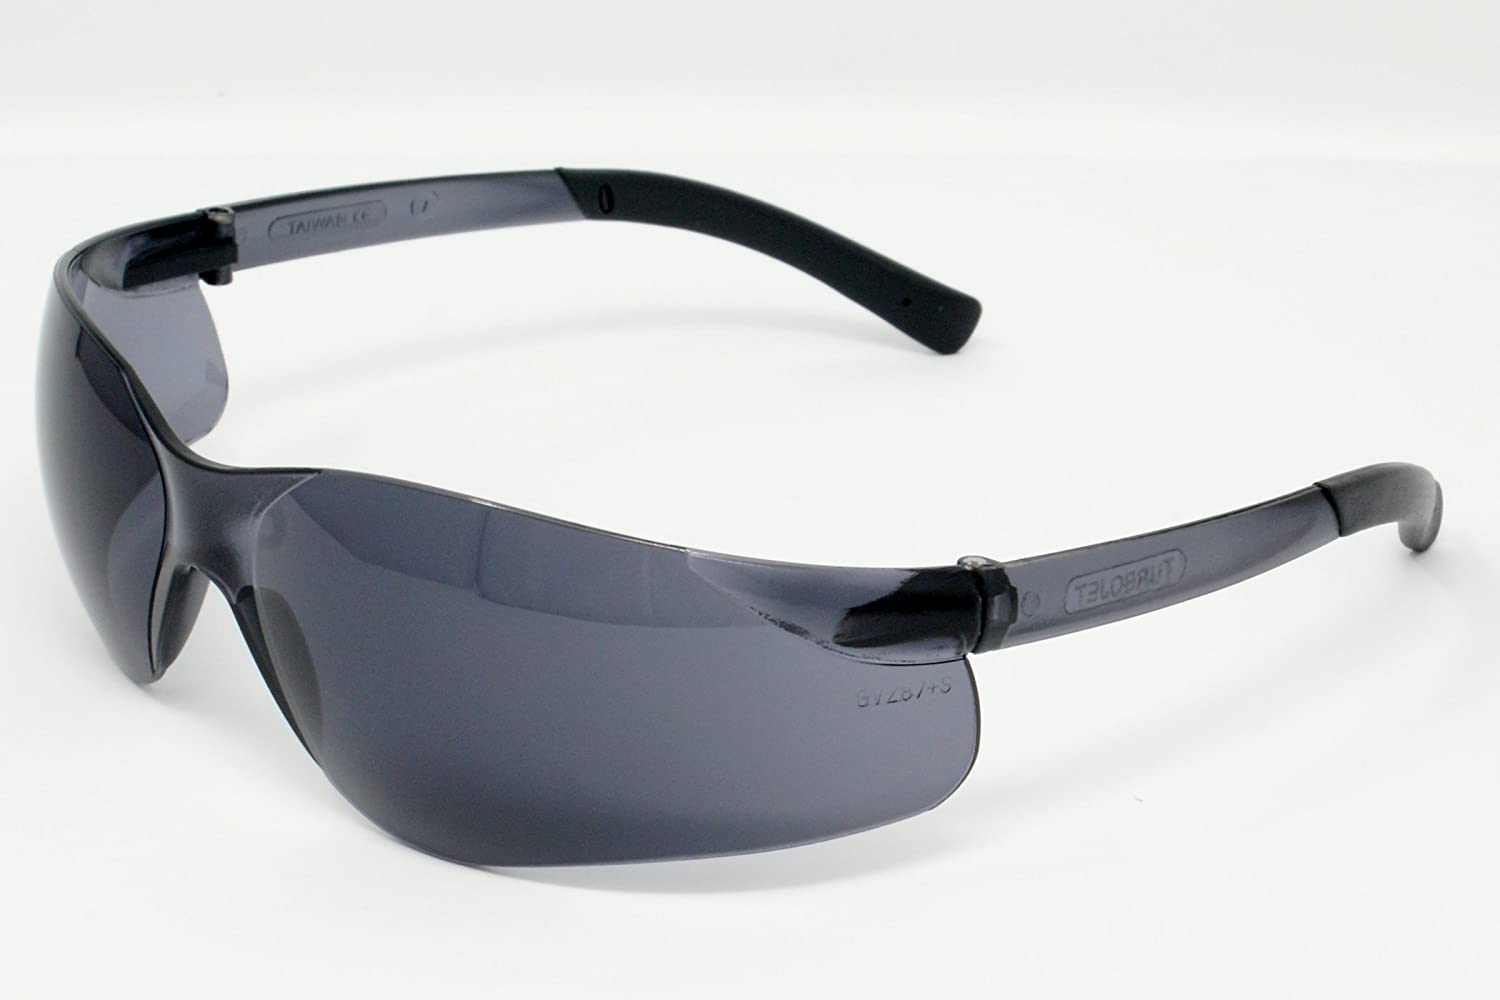 c505d1233b Global Vision Shatterproof UV400 Rowing Glasses Wraparound Sunglasses  Complete With FREE Microfibre Storage Pouch  Amazon.co.uk  Sports   Outdoors